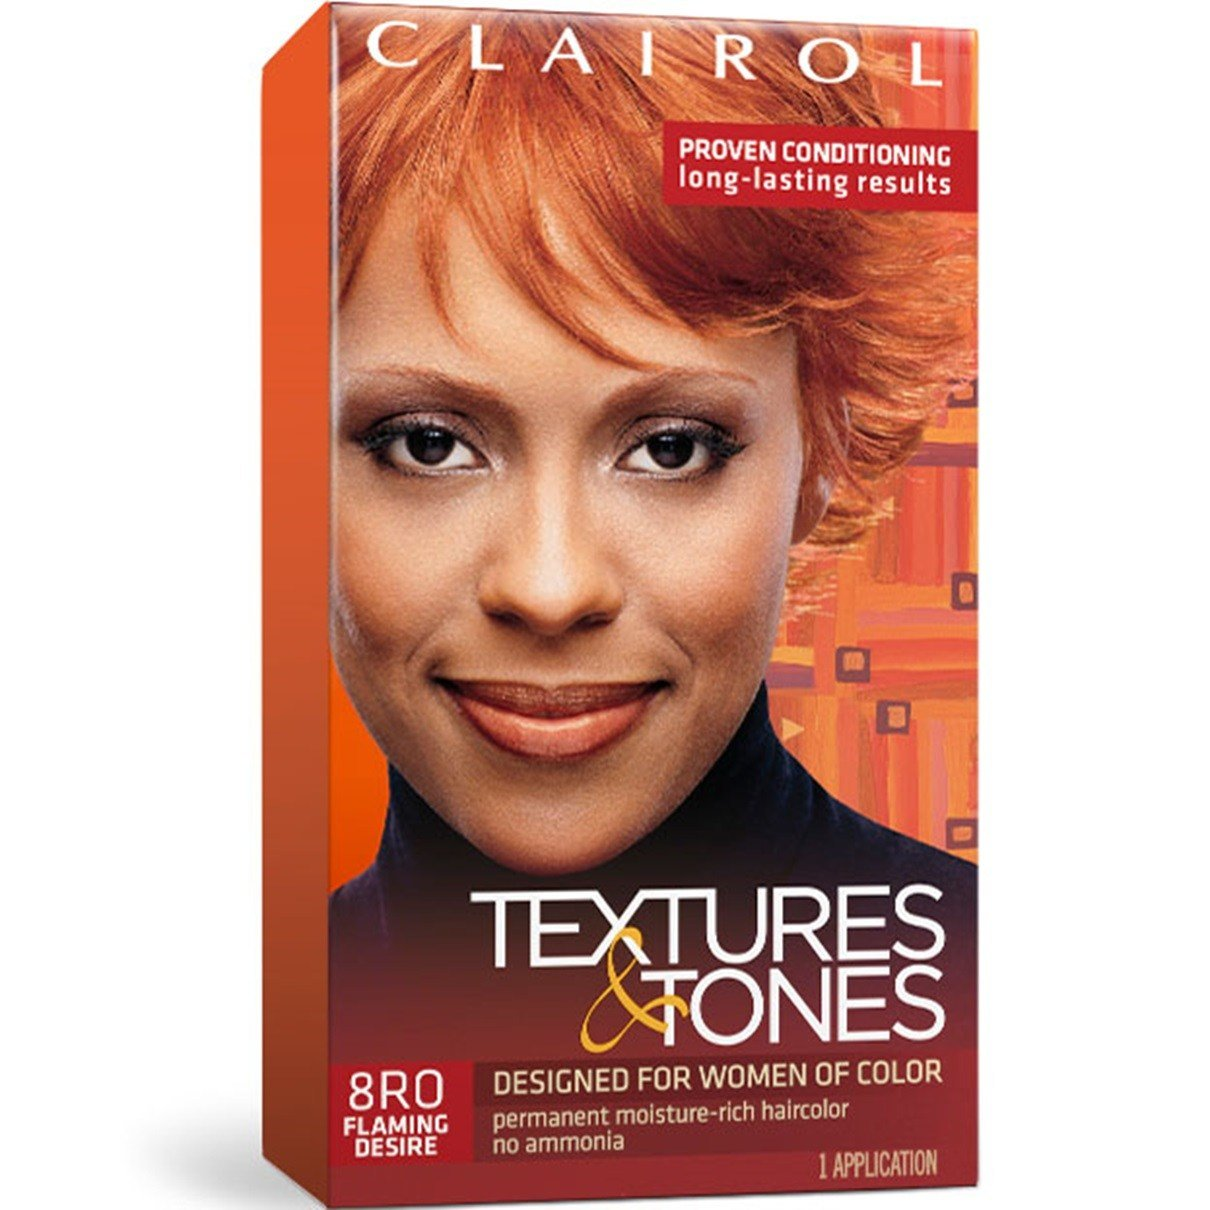 New Clairol Textures Tones Permanent Hair Color Dye Kit 1 Ideas With Pictures